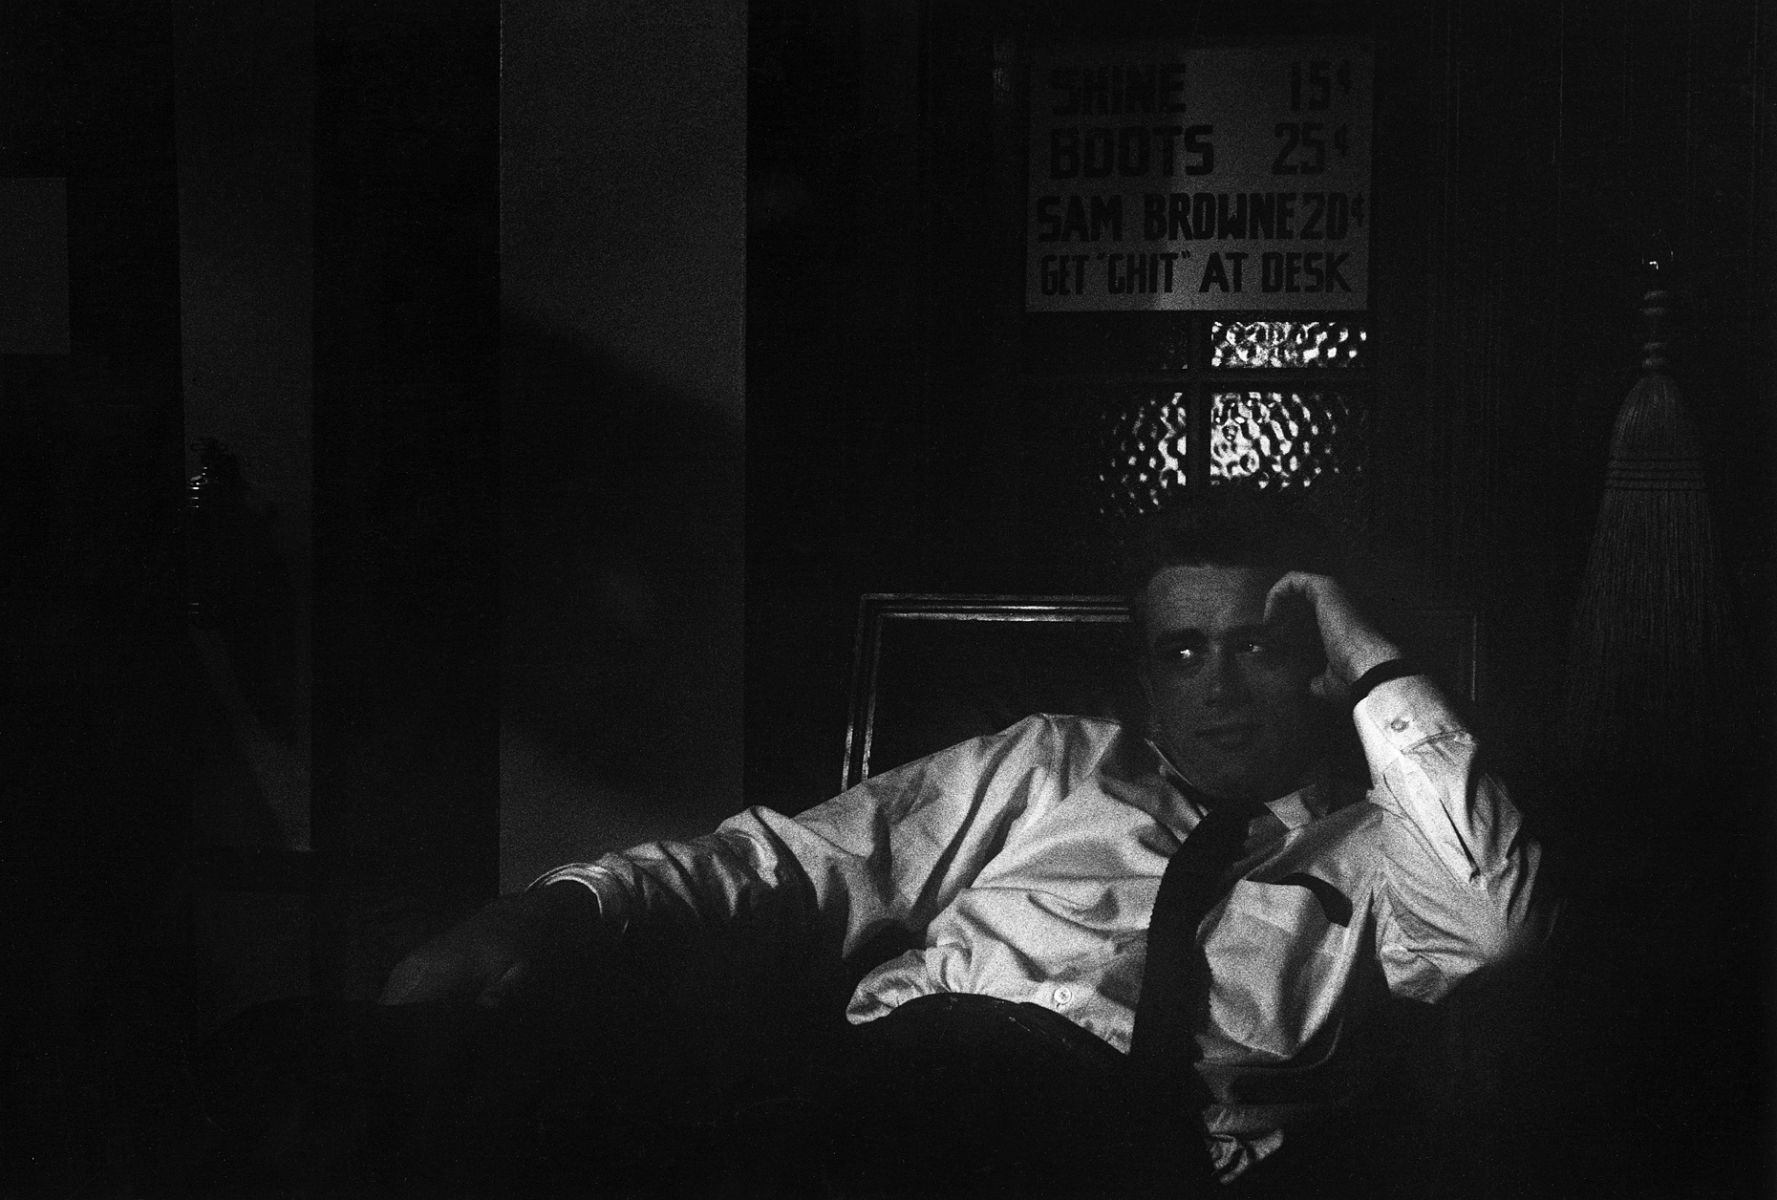 James Dean sitting in the shadows on the Warner Bros. set of Rebel Without a Cause, 1955.